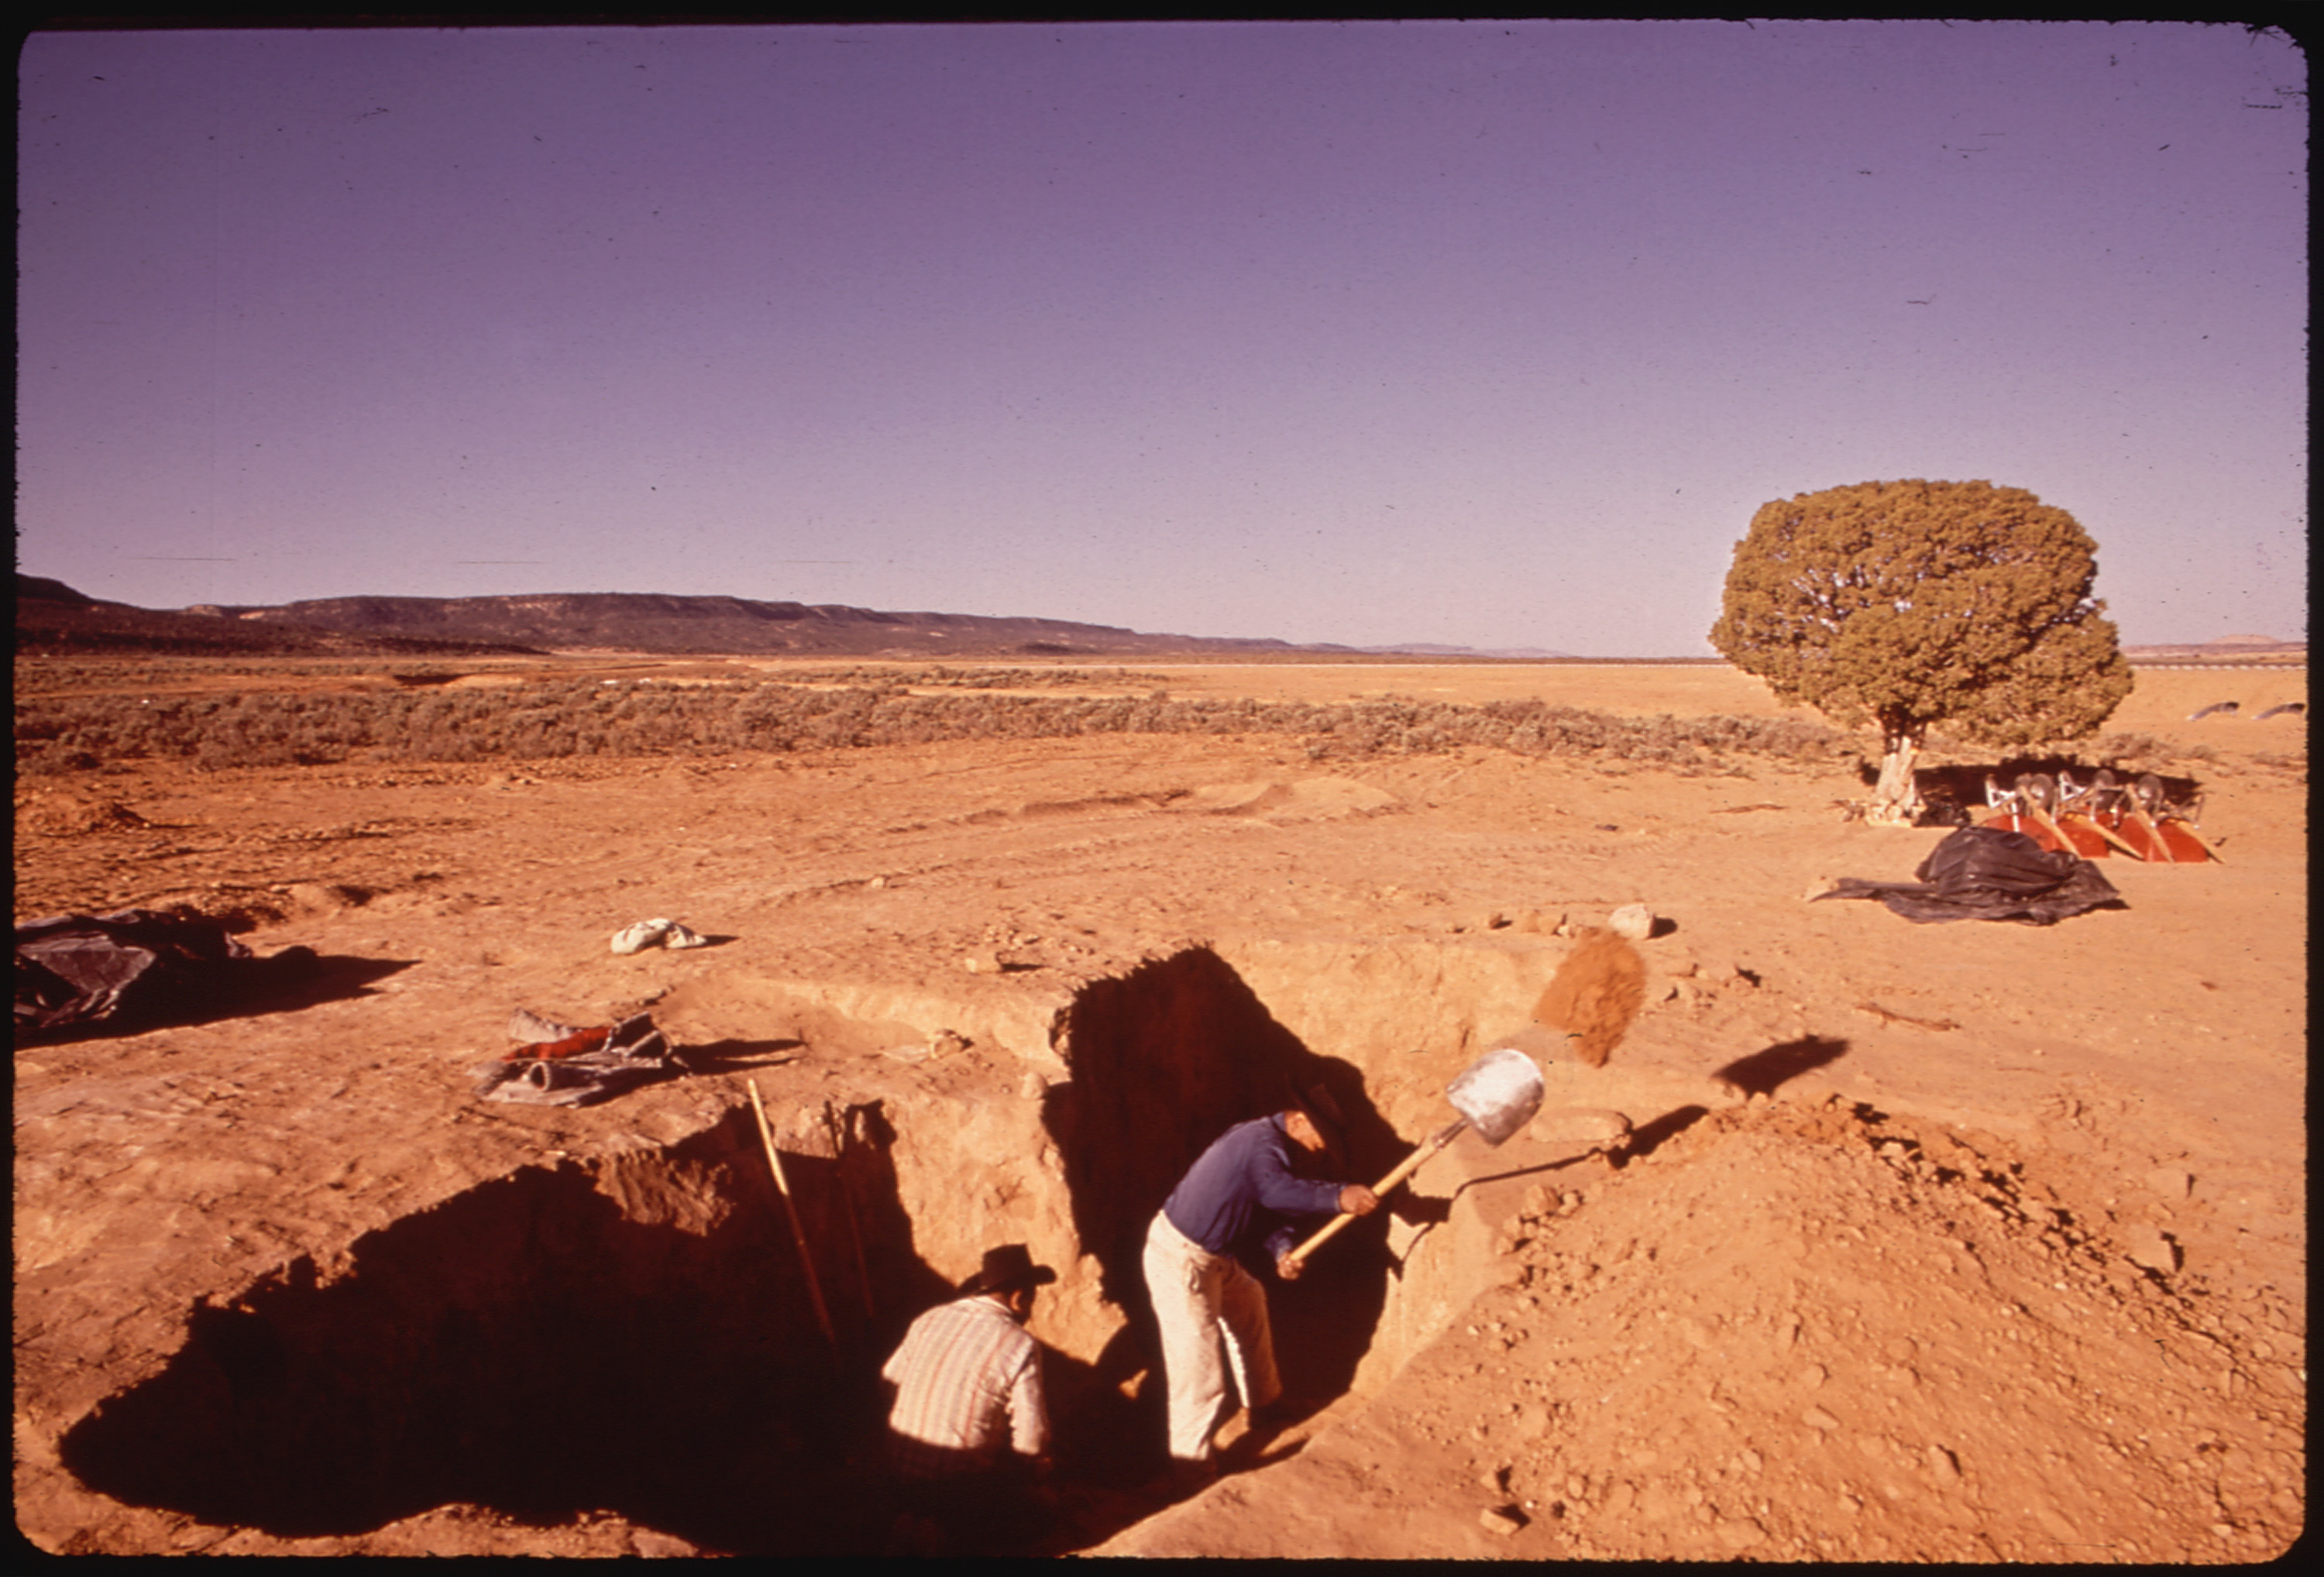 Sklled Navajos Carry Out Archaelogical Excavations. The Dig Is a Project of the Museum of Northern Arizona